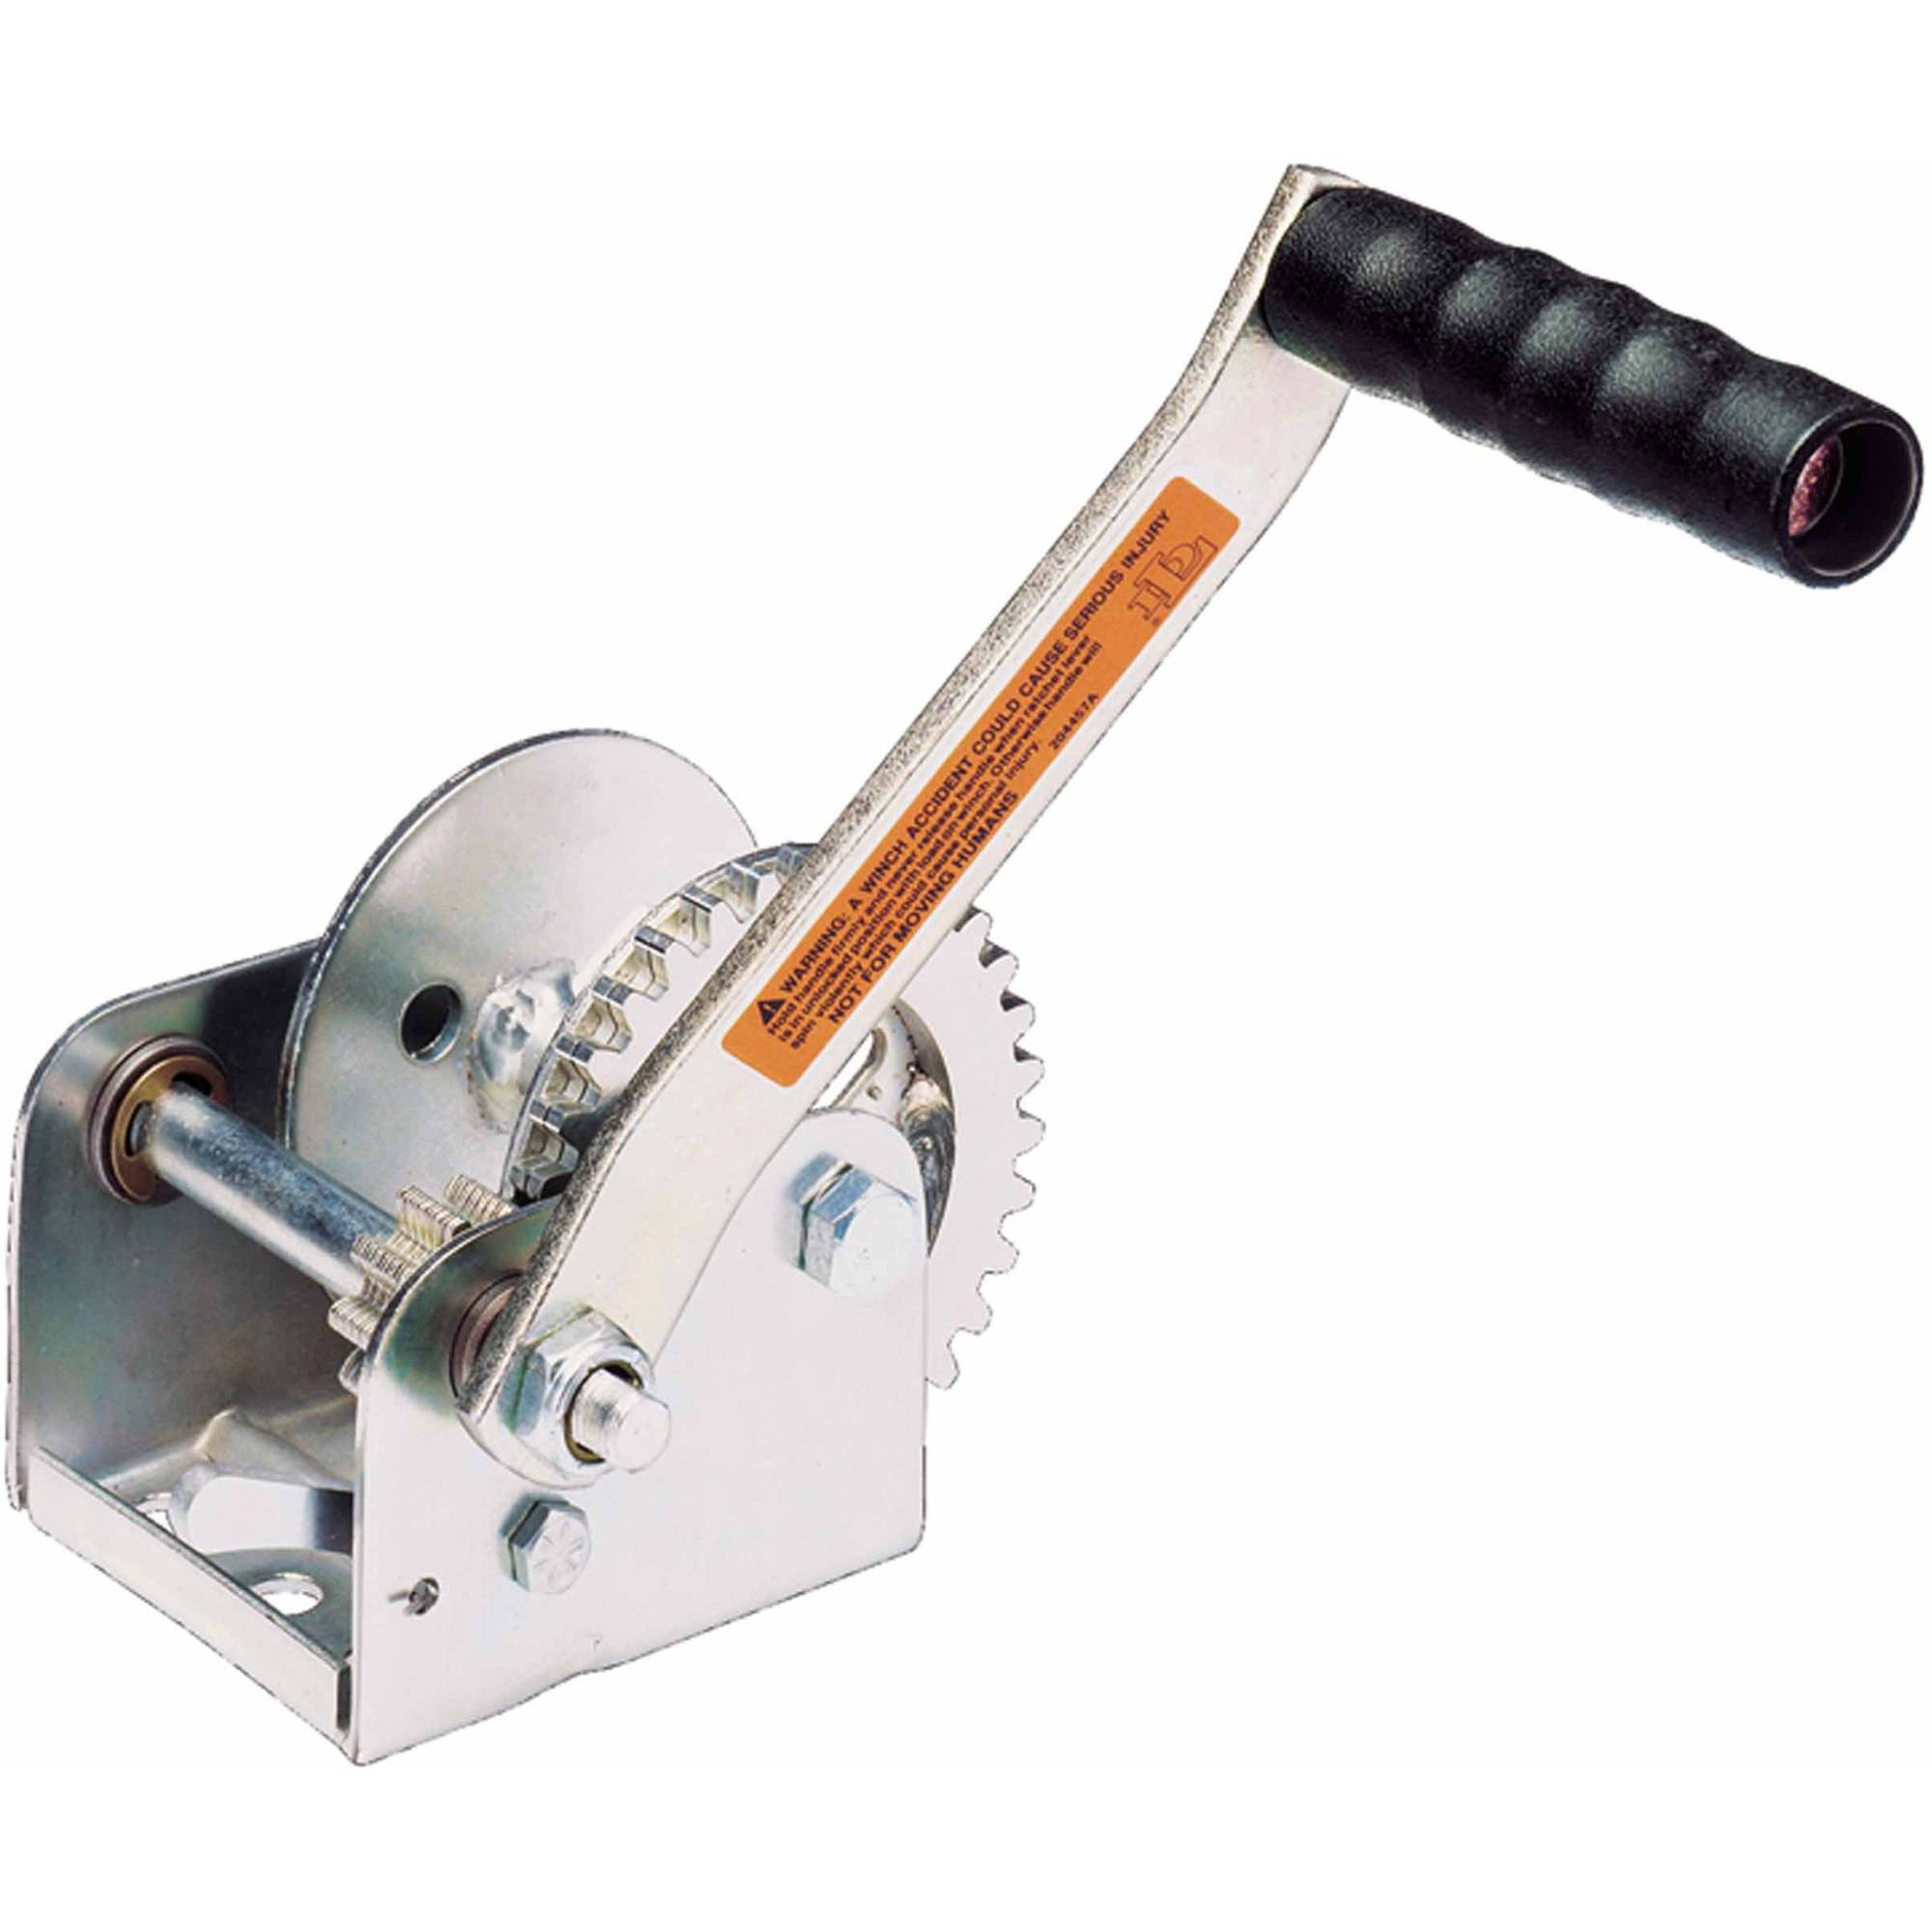 Dutton-Lainson 15002 Pulling Winch with Ratchet, 900 lbs